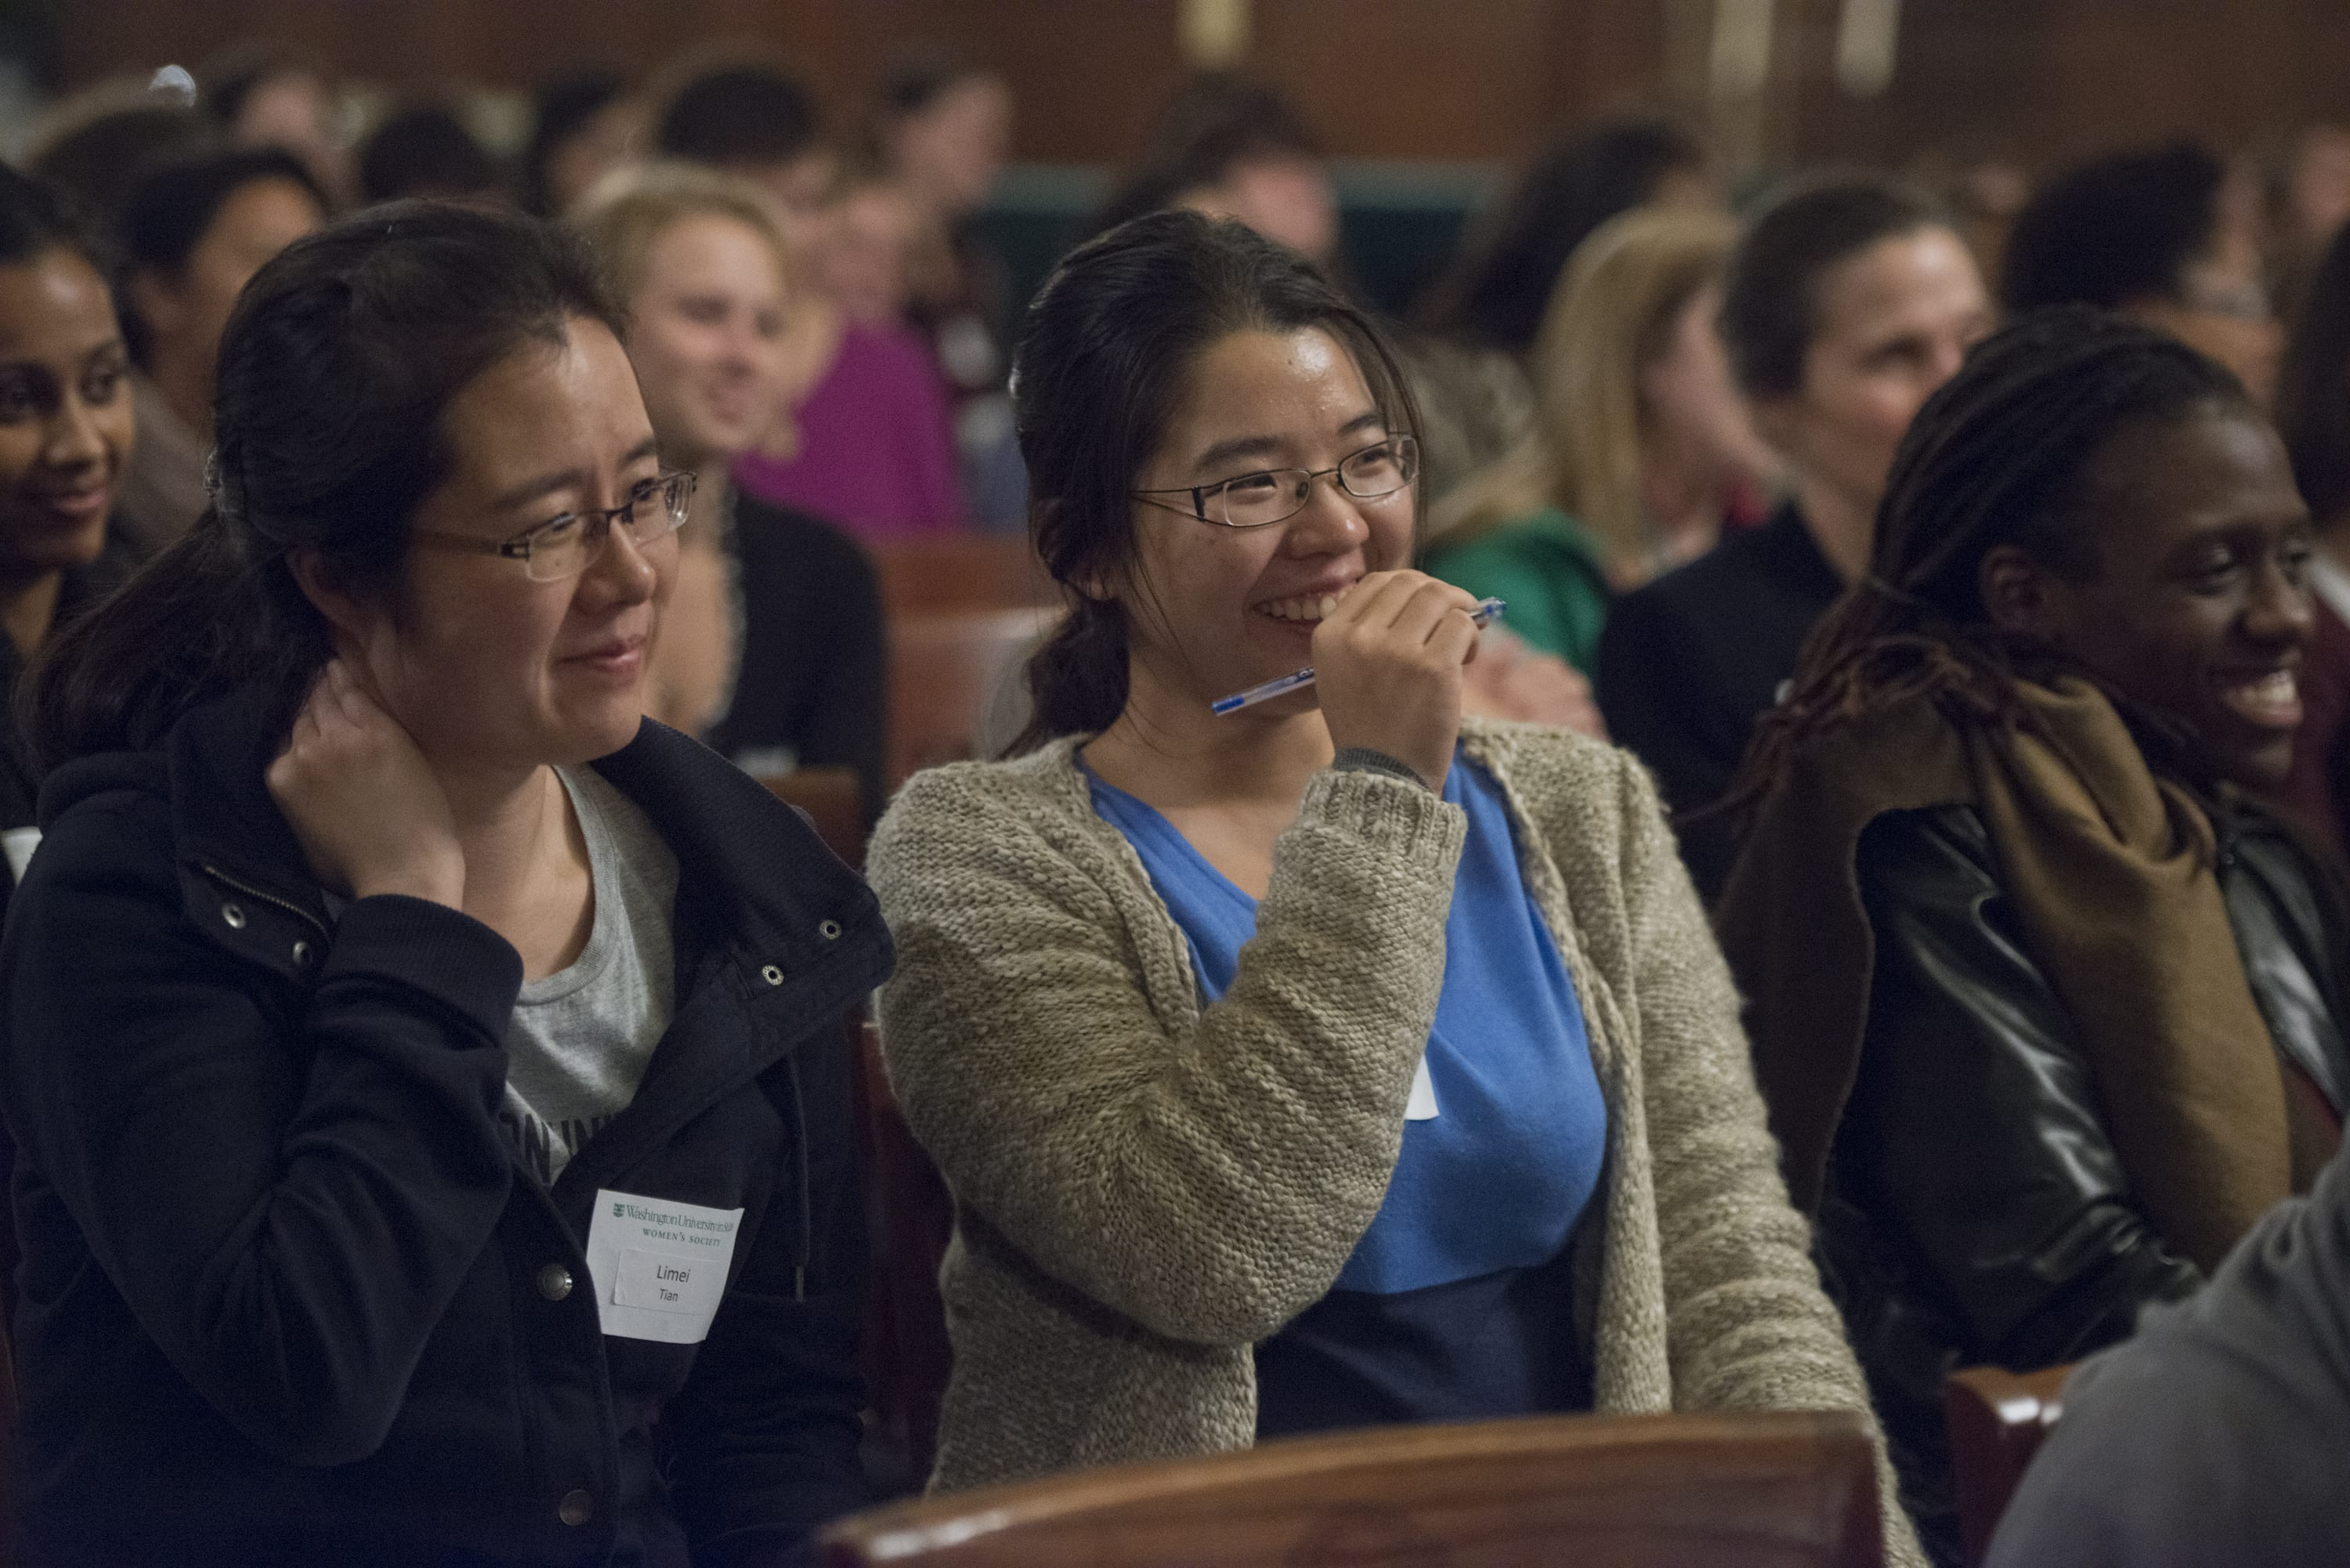 An audience member laughs at a comment at the 2013 WSWU Composing a Life event